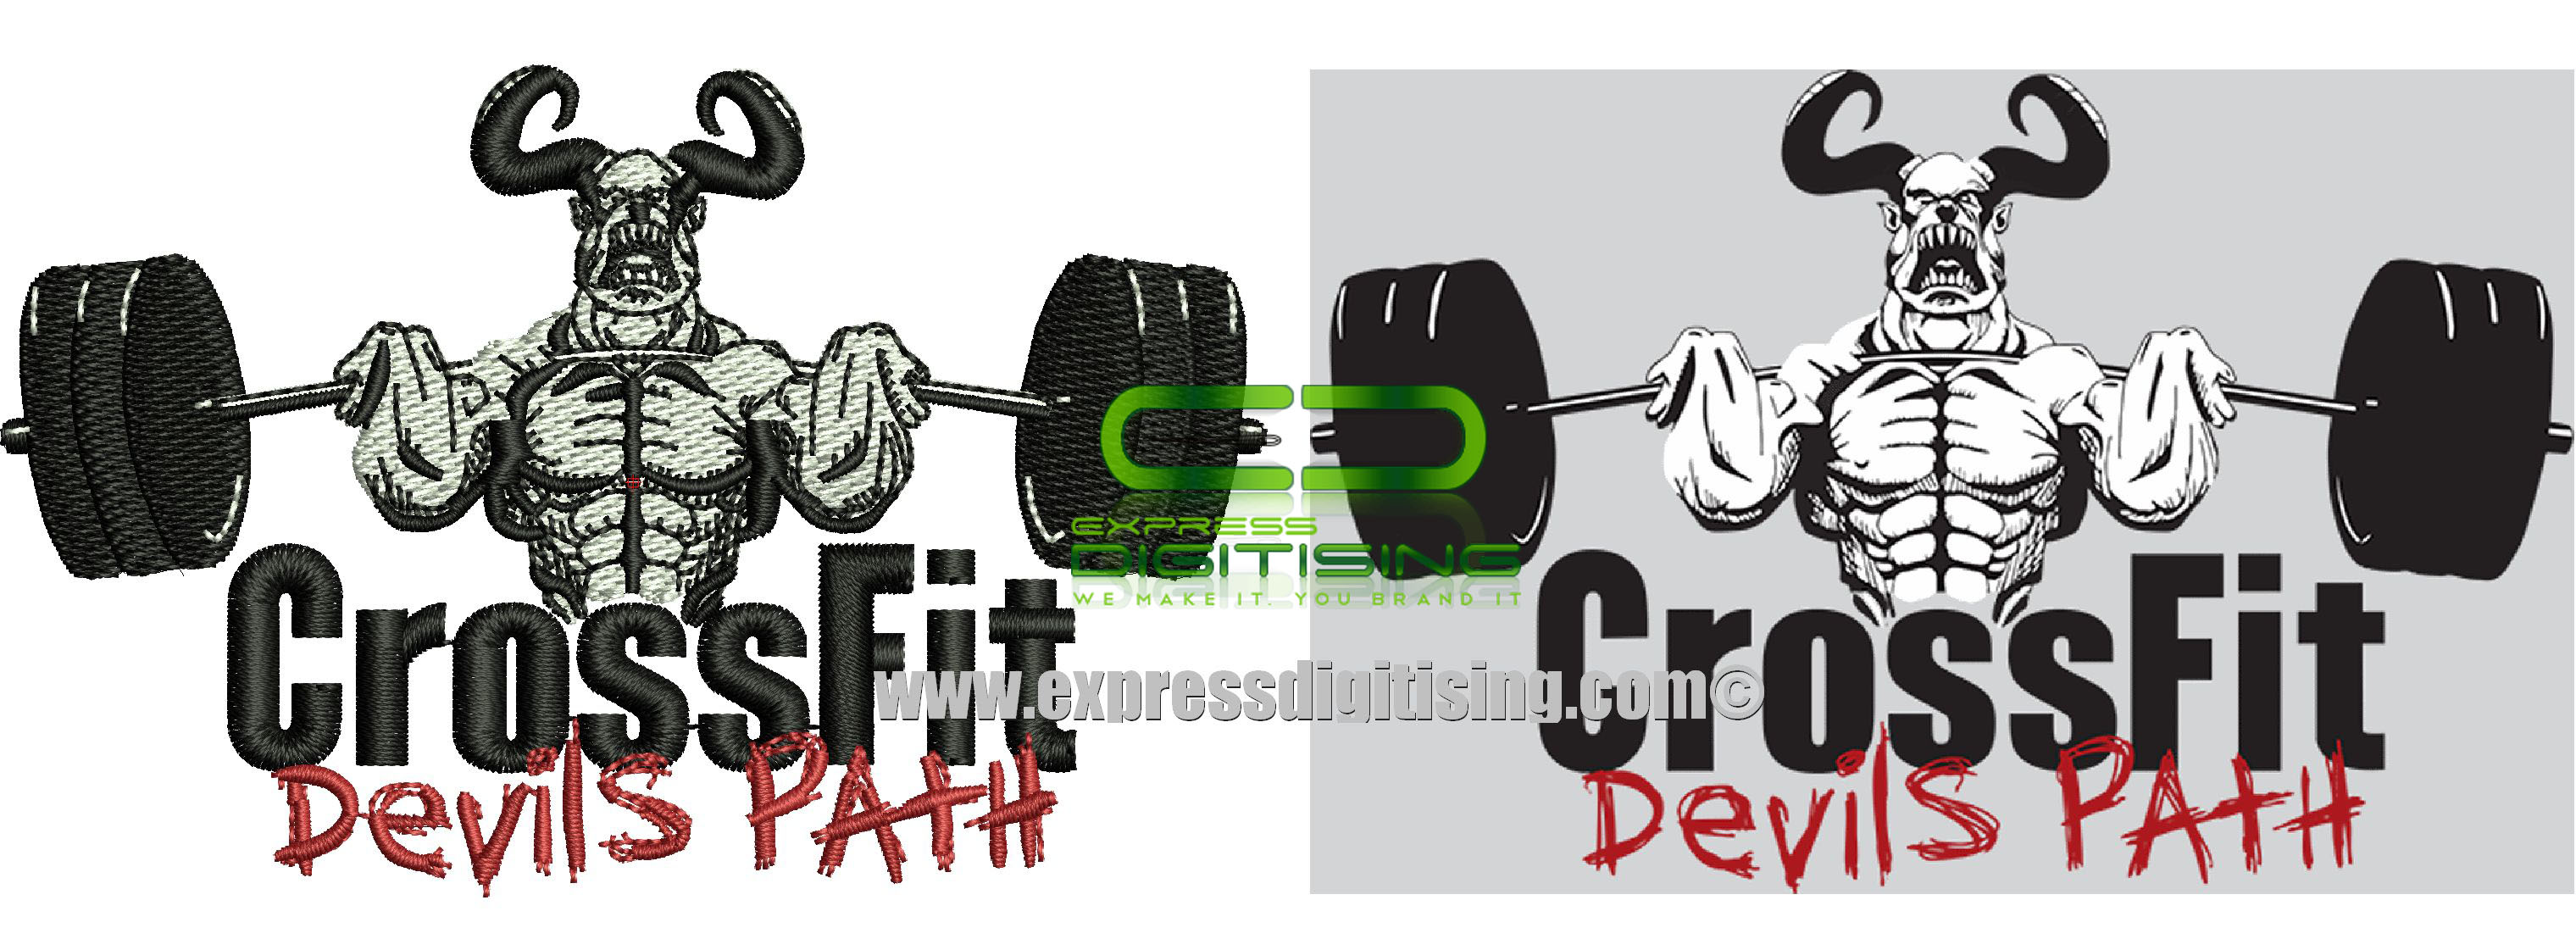 Embroidery Digitizing   Embroidery Digitizer   Embroidery Digitizing Services